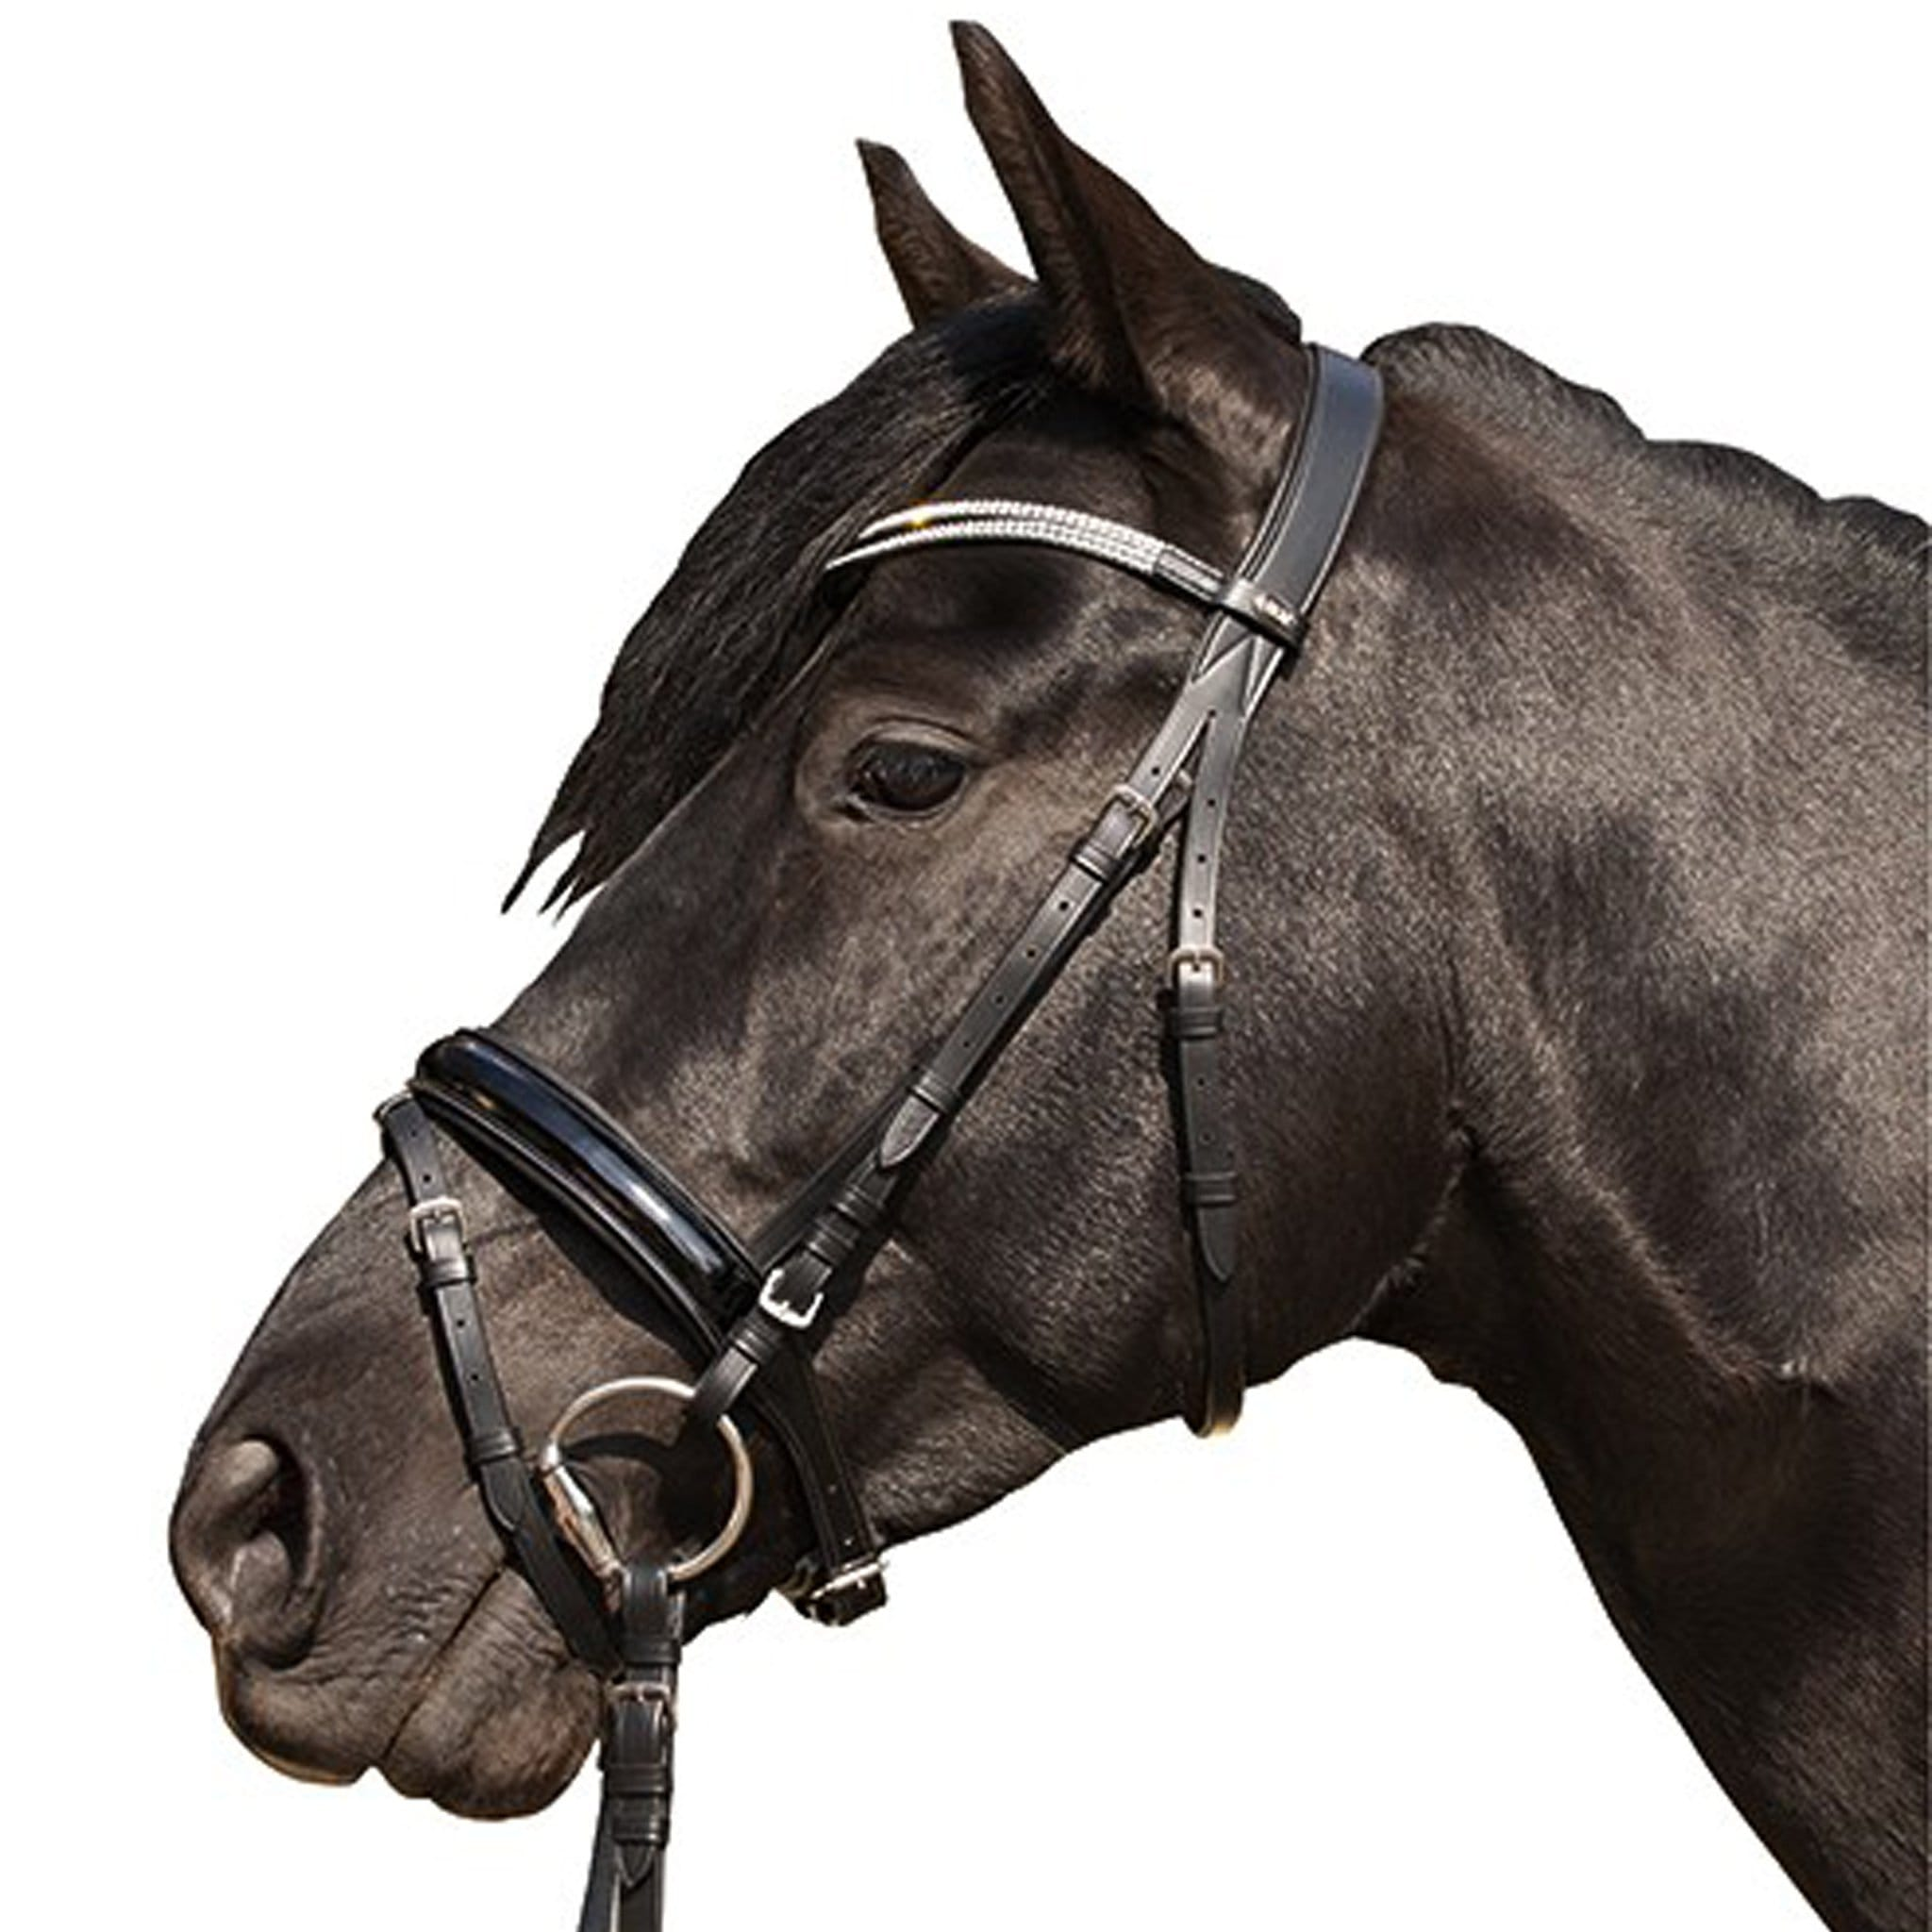 HKM Starlight Bridle on Horse 4239